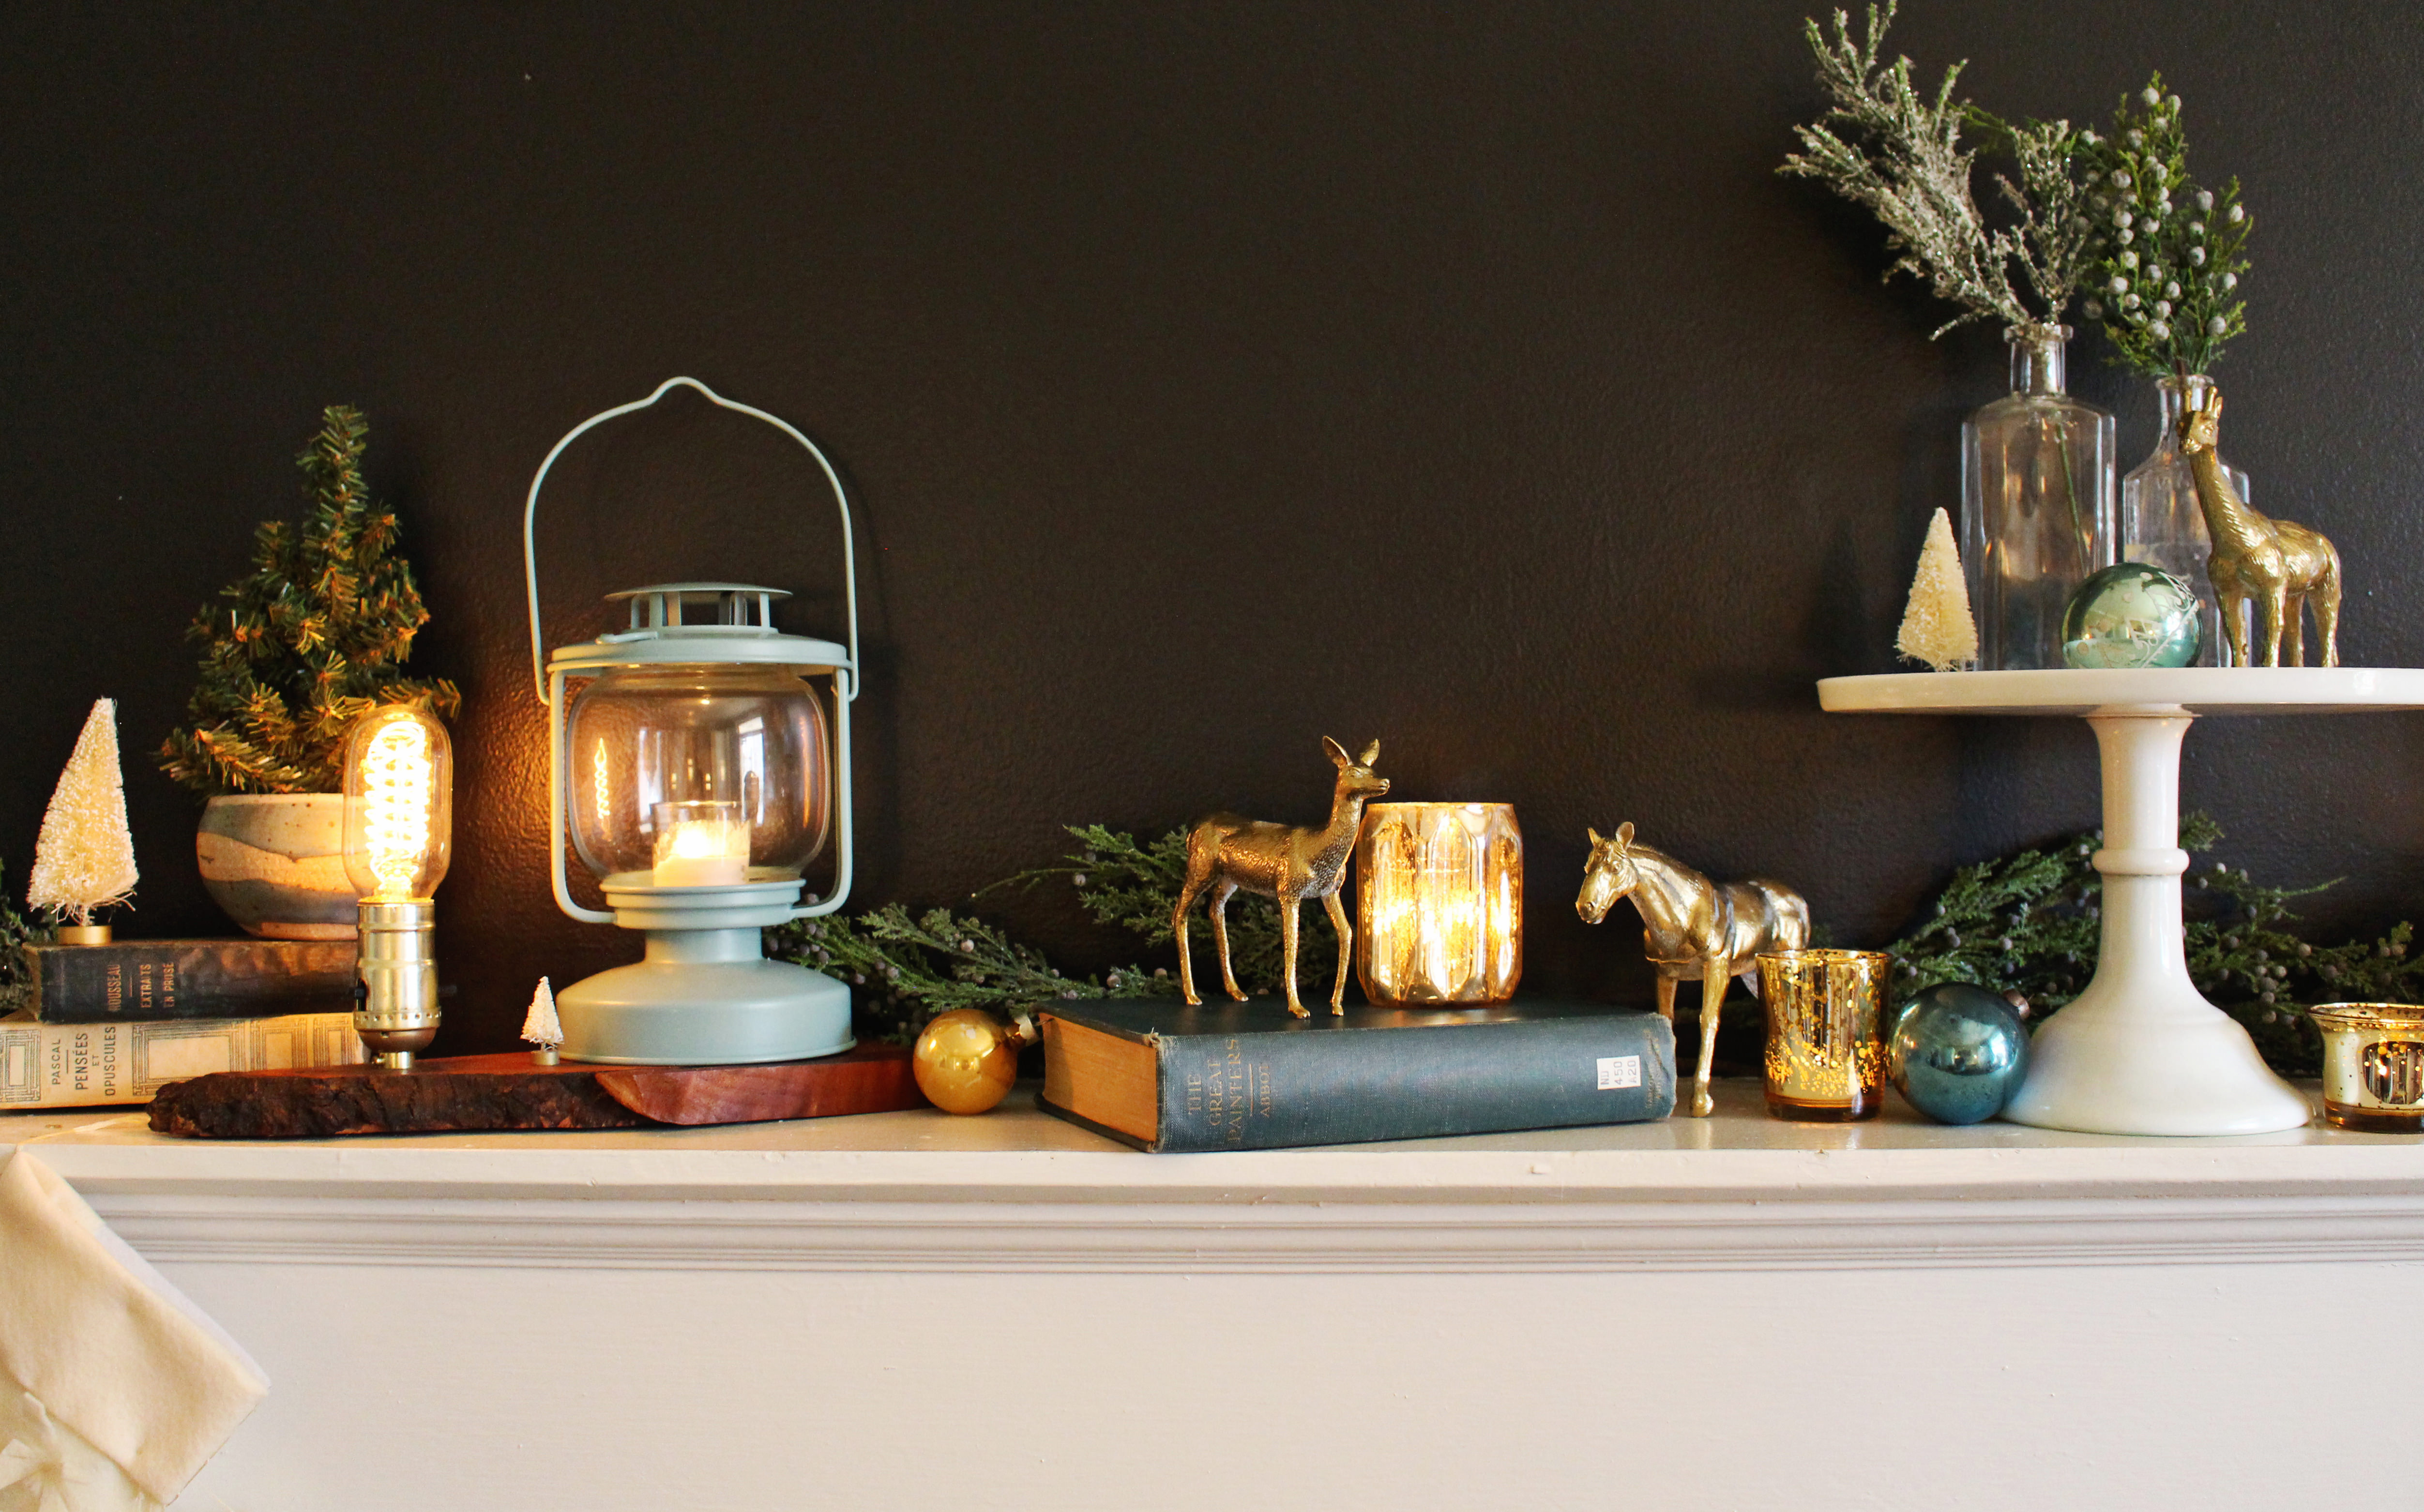 DIY gold animals are an unexpected holiday mantle details